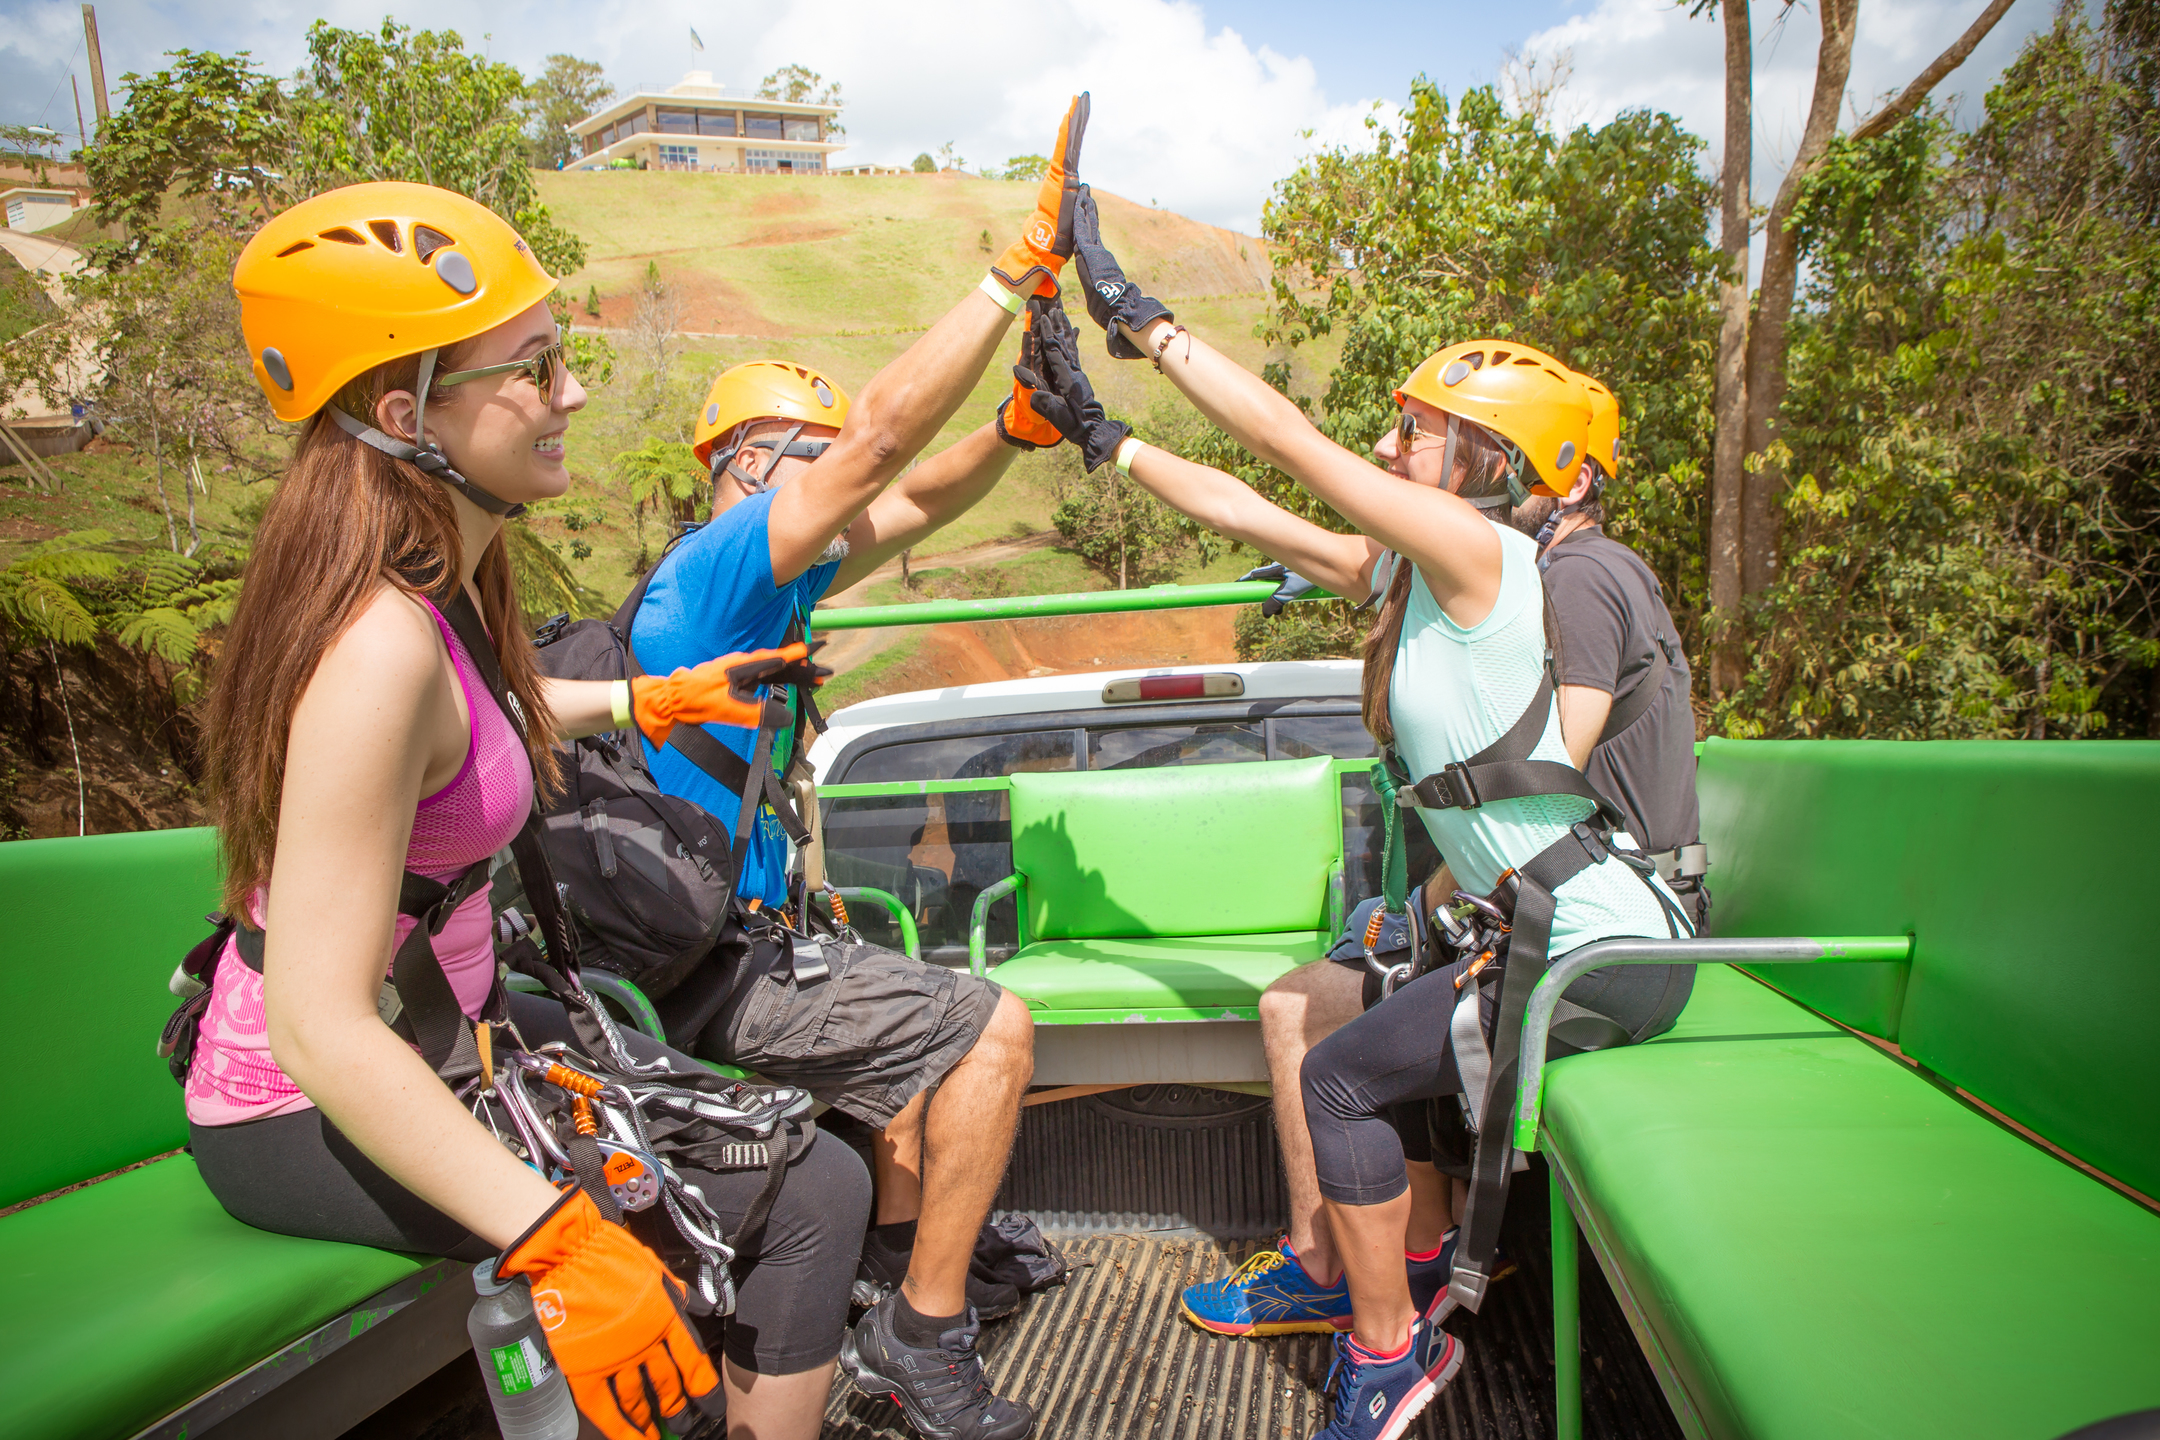 A group high-fives after an activity at Toro Verde Nature Adventure Park.